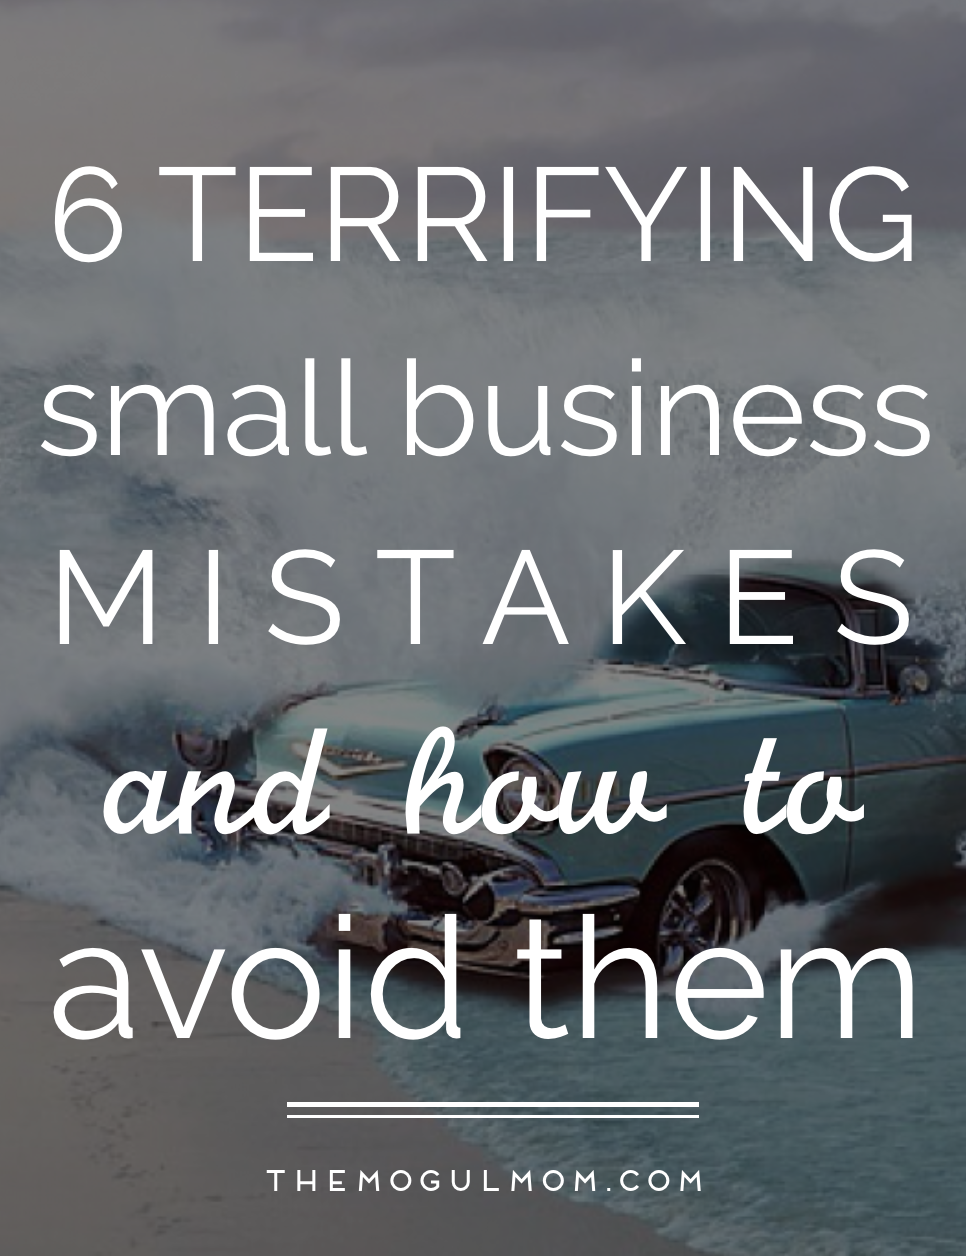 6 Terrifying Small Business Mistakes (and How to Avoid Them)